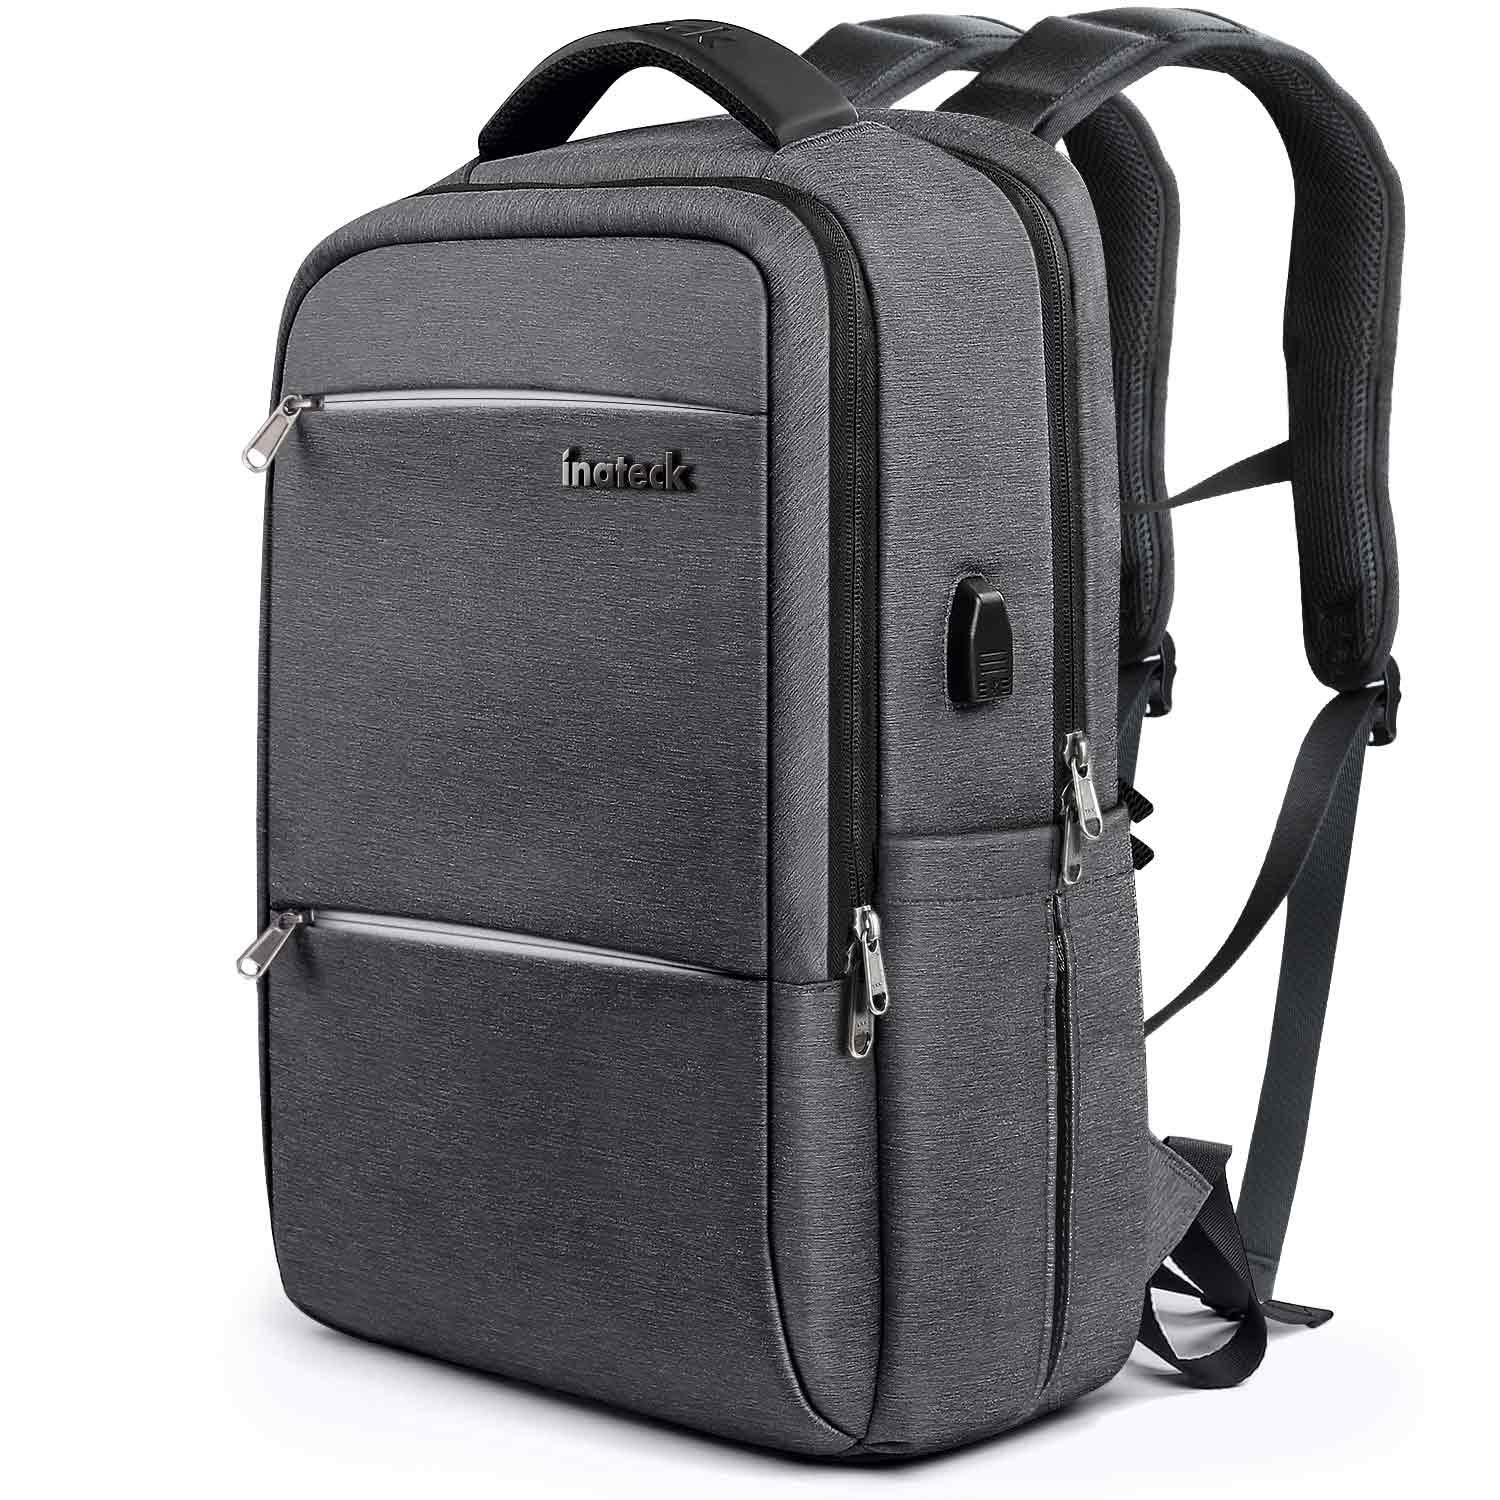 Inateck Laptop Backpack with USB Charging Port 31168eb15ffa0